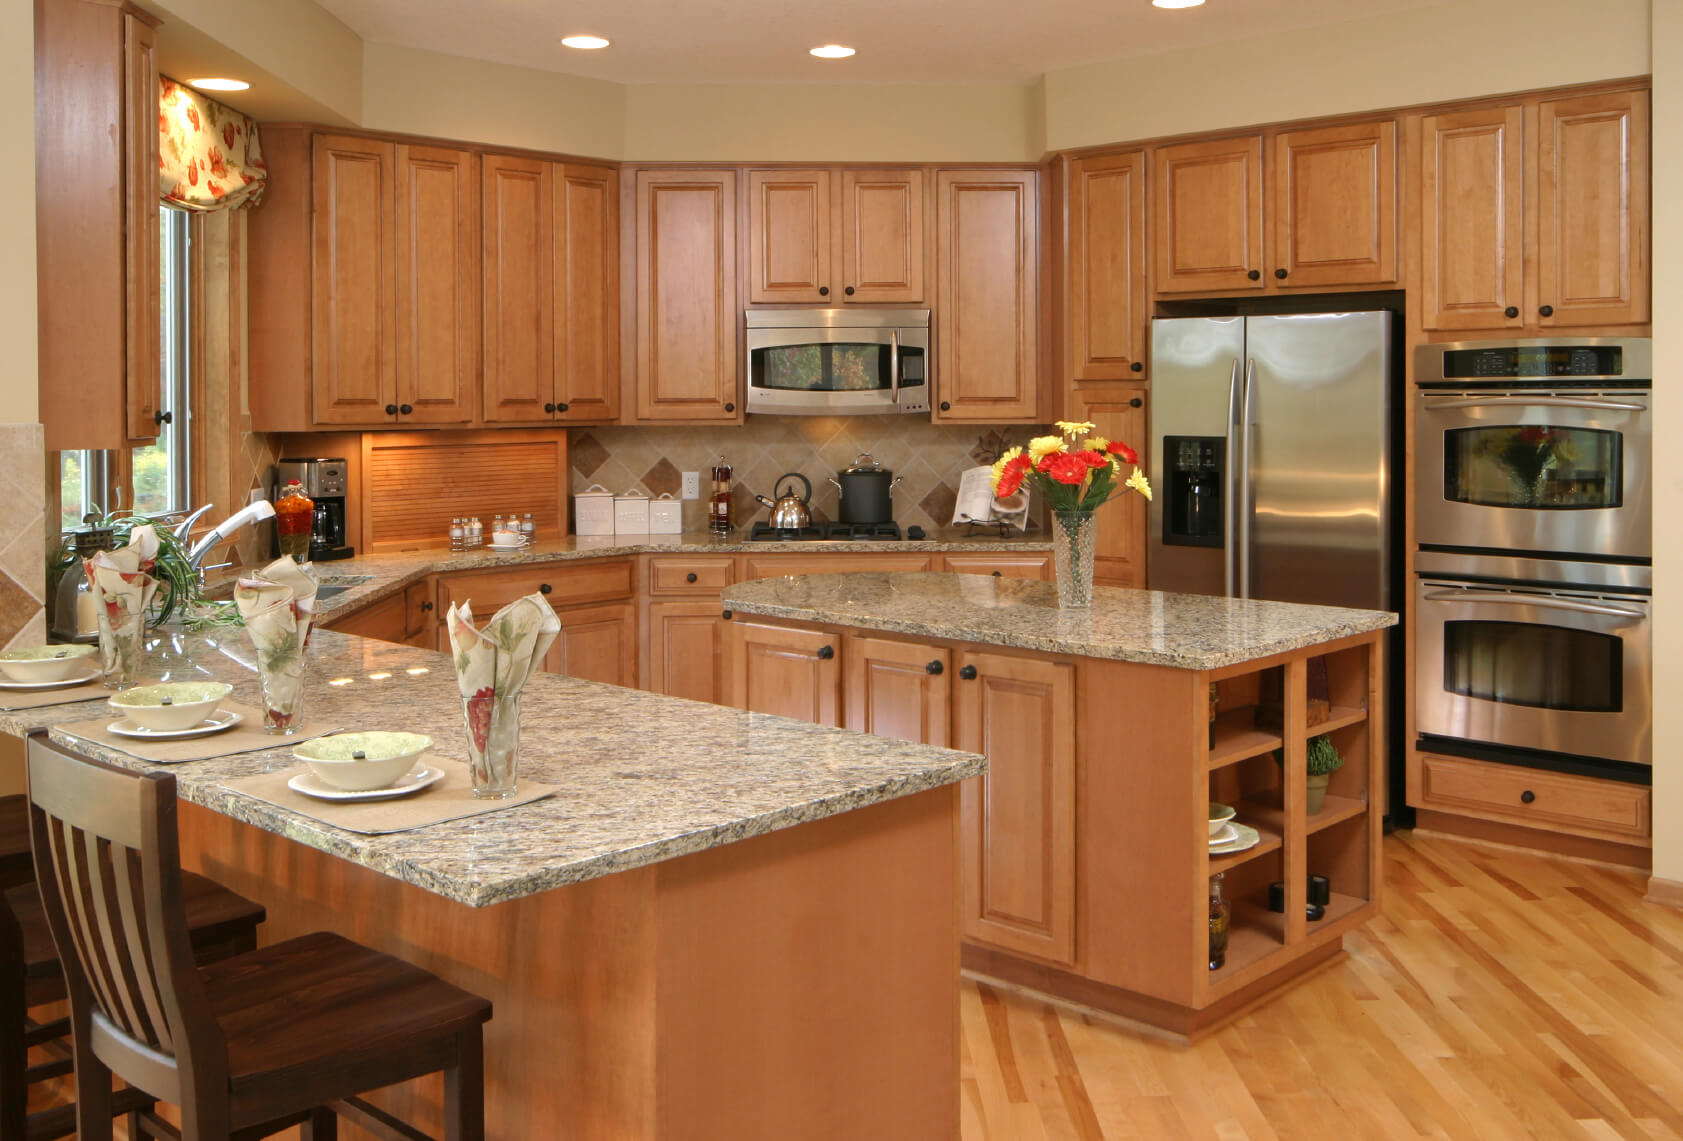 Kitchen Colors With Light Wood Cabinets Solidly U Shaped Kitchen Here Awash In Warm Natural Wood